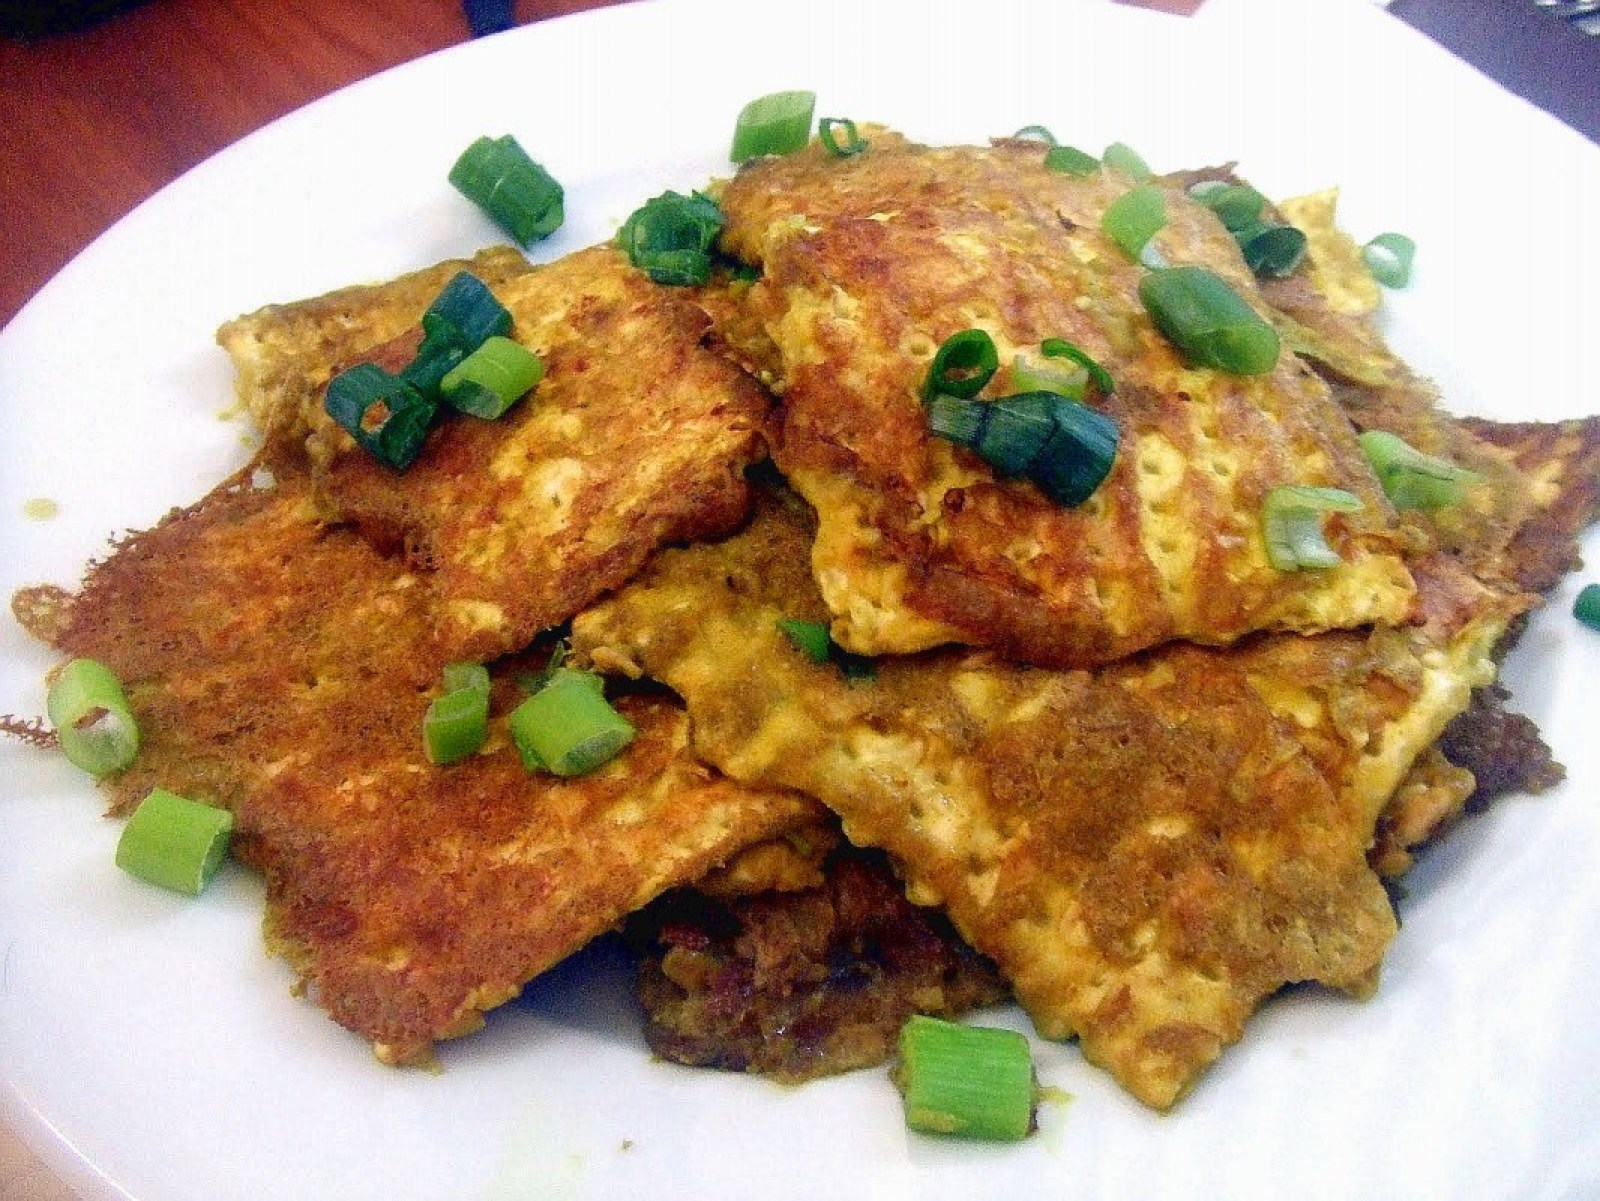 Vegan Fried Matzo with Green ONions